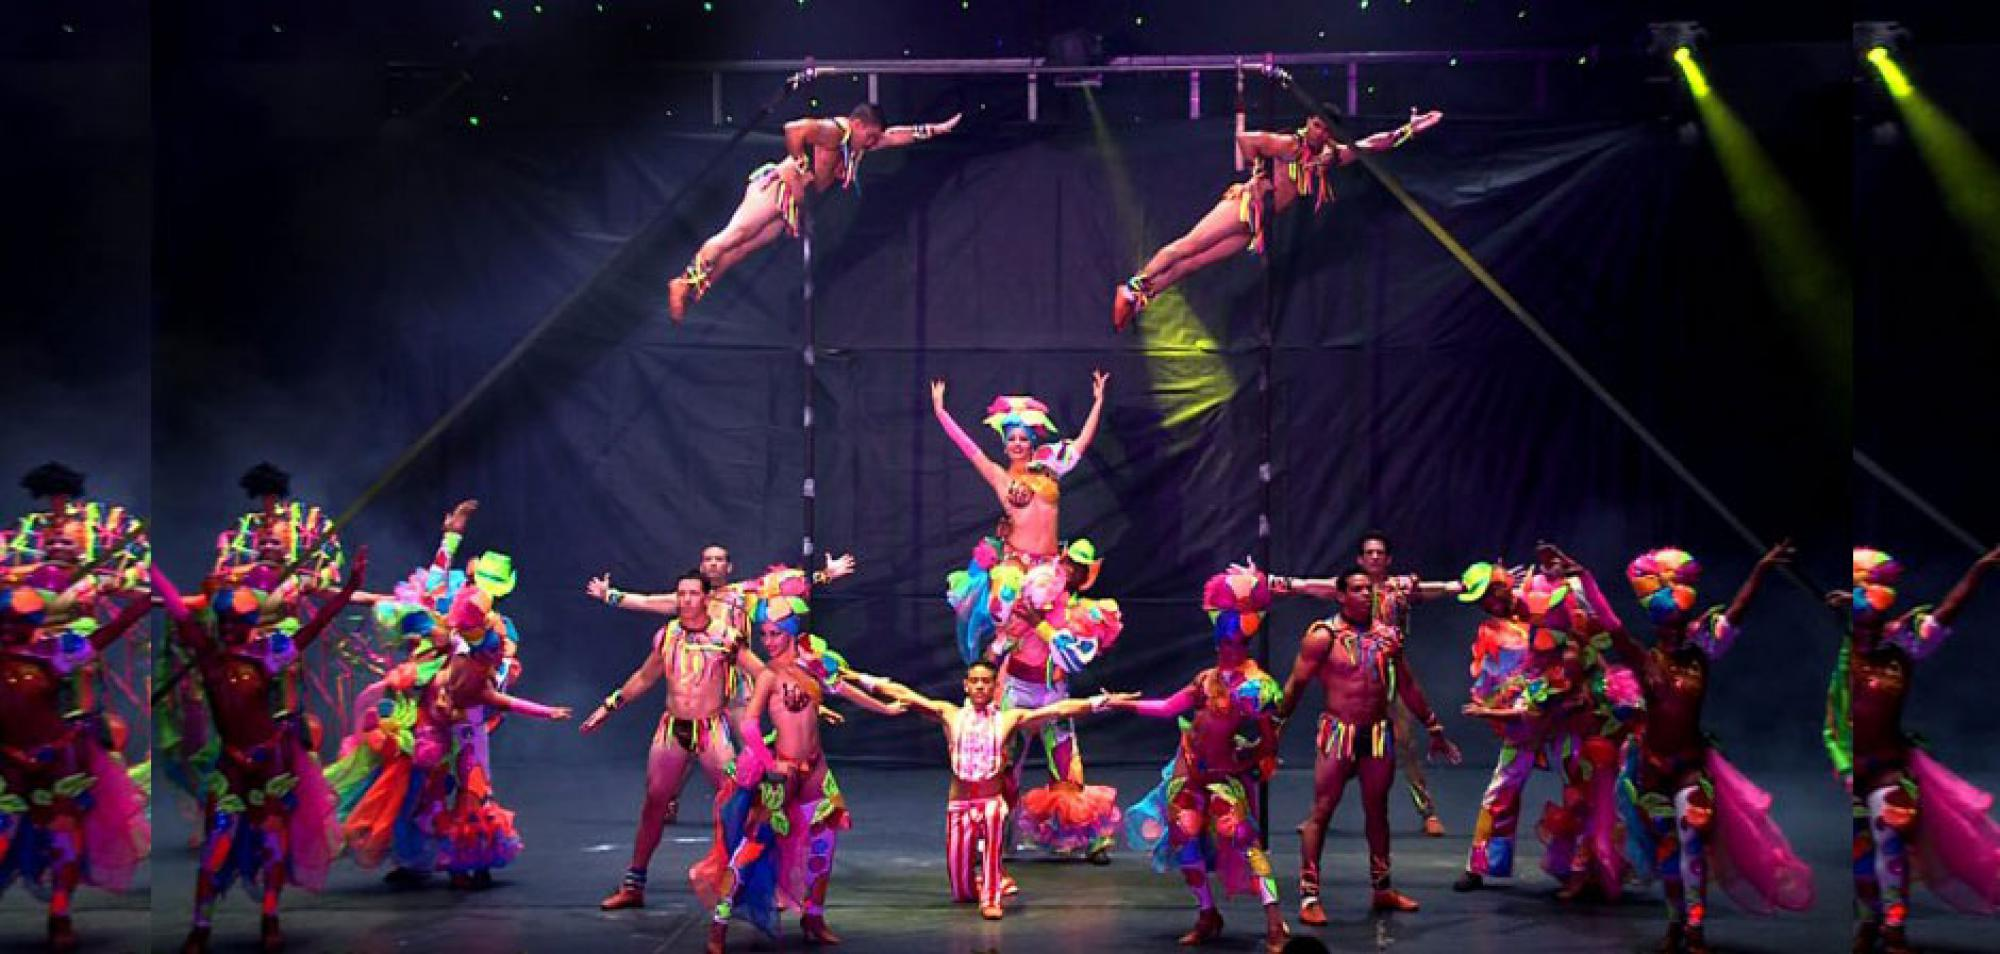 Circus Cuban Group Compañía Havana still on Tour in Italy